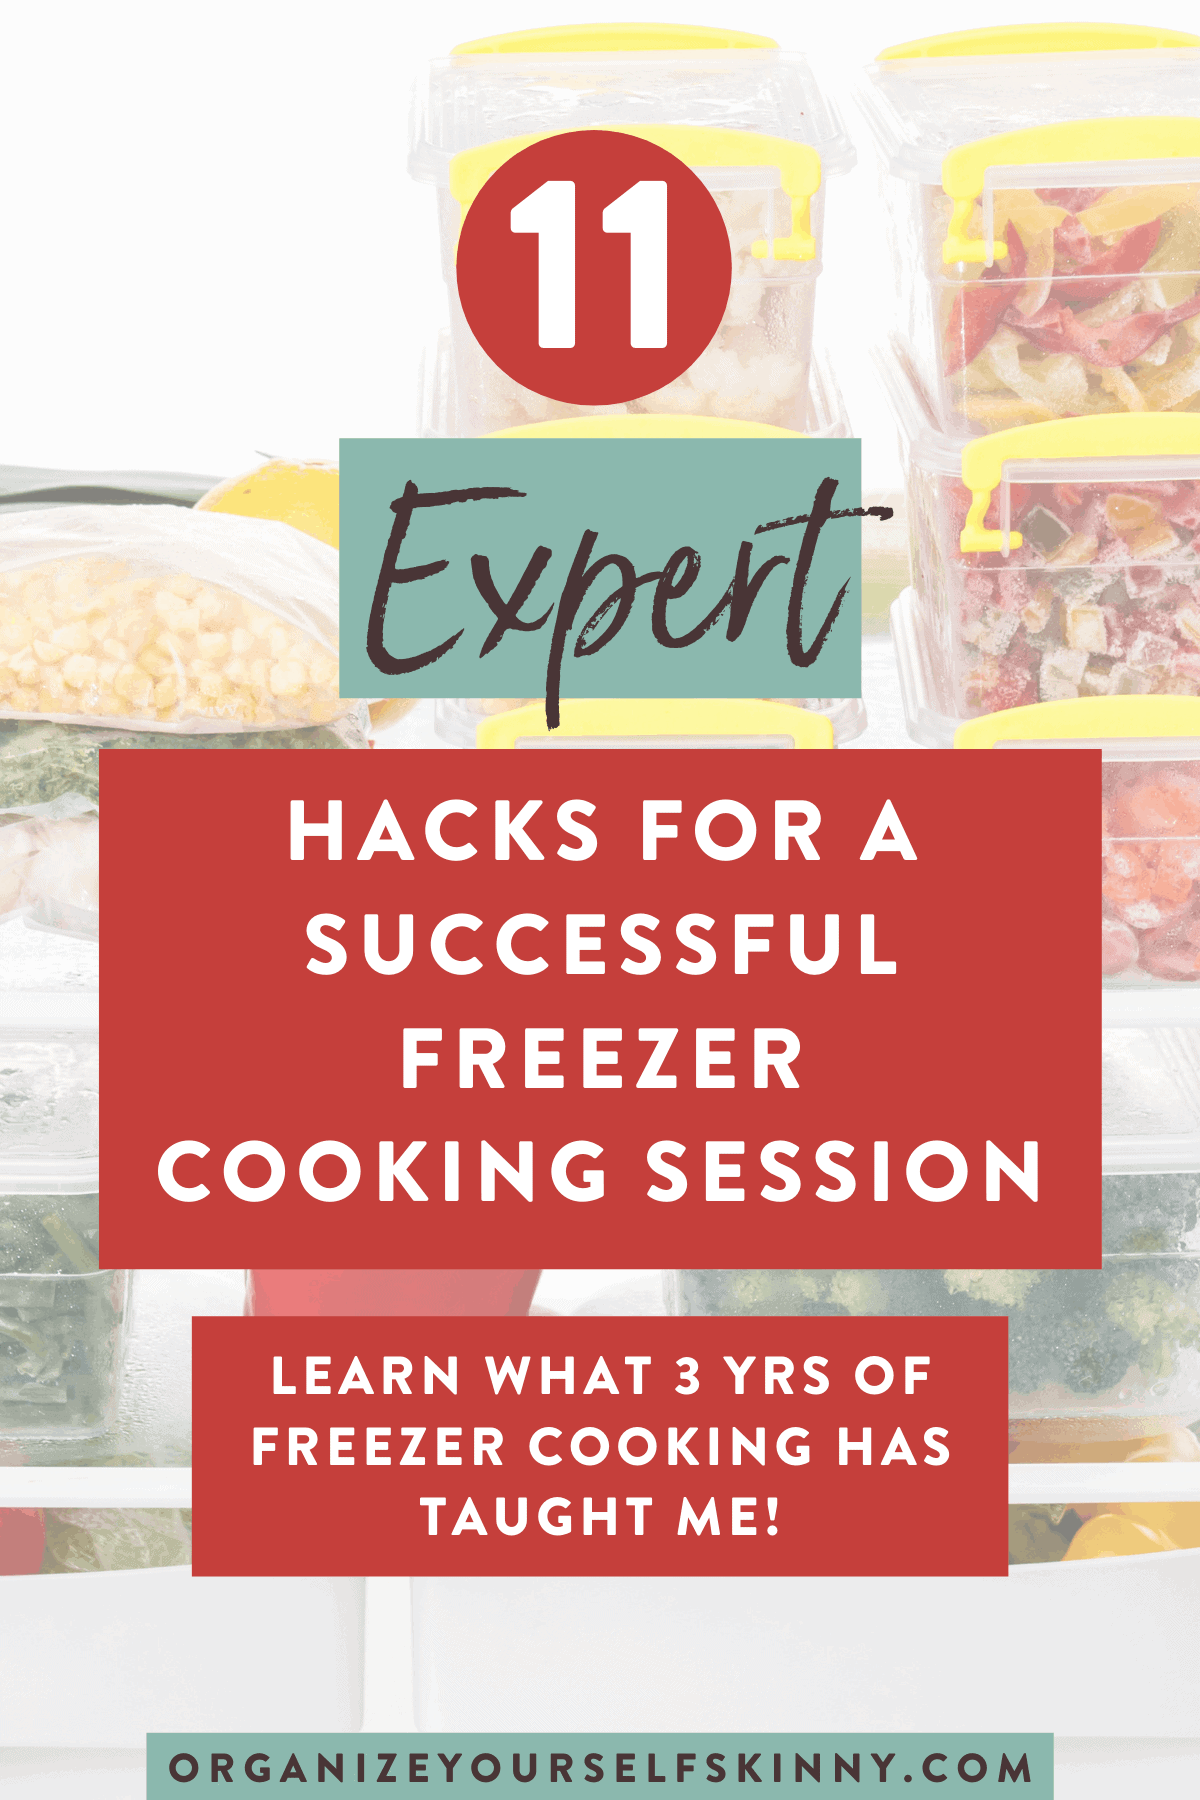 expert-hacks-for-a-succcessful-freezer-cooking-session